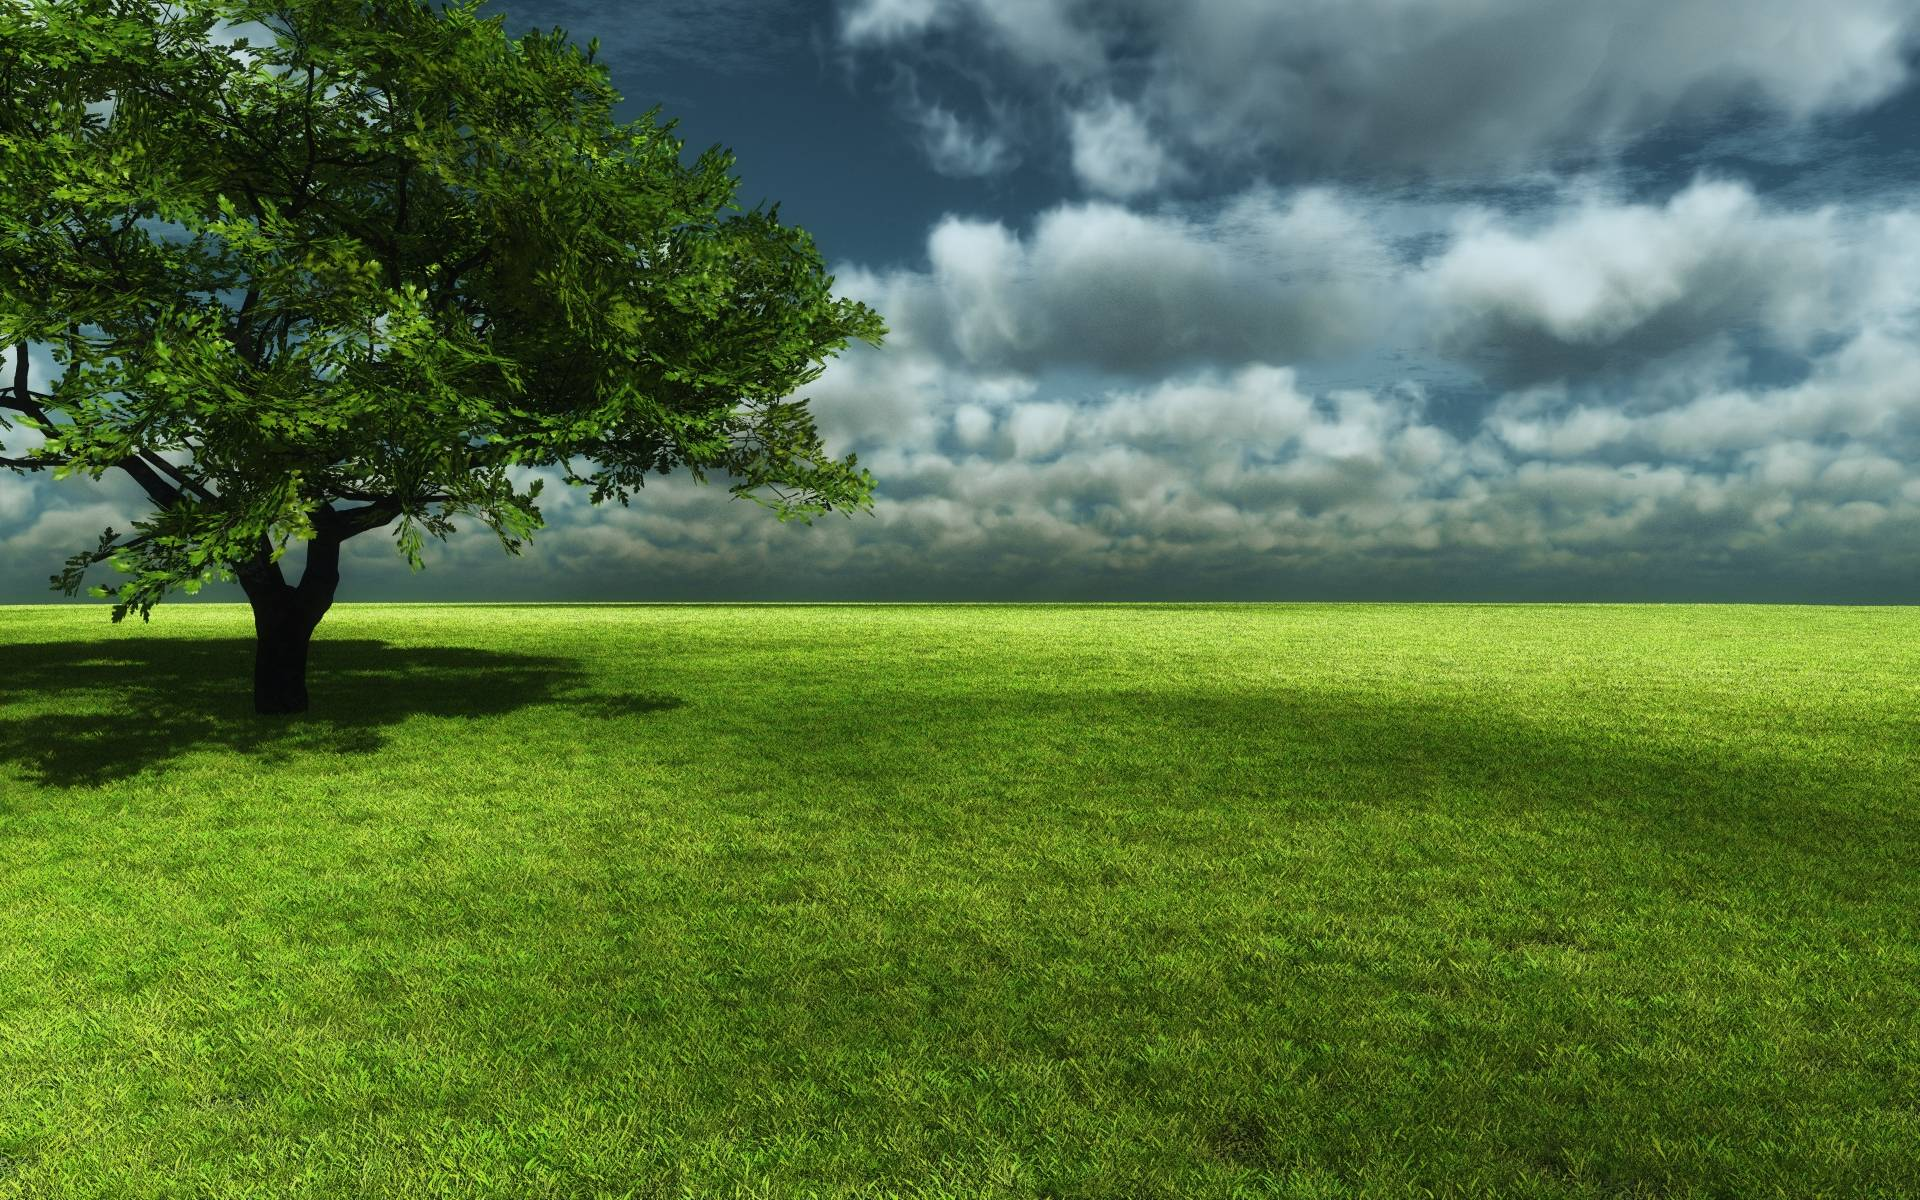 most downloaded grassland wallpapers full hd wallpaper search grass background hd a11 background